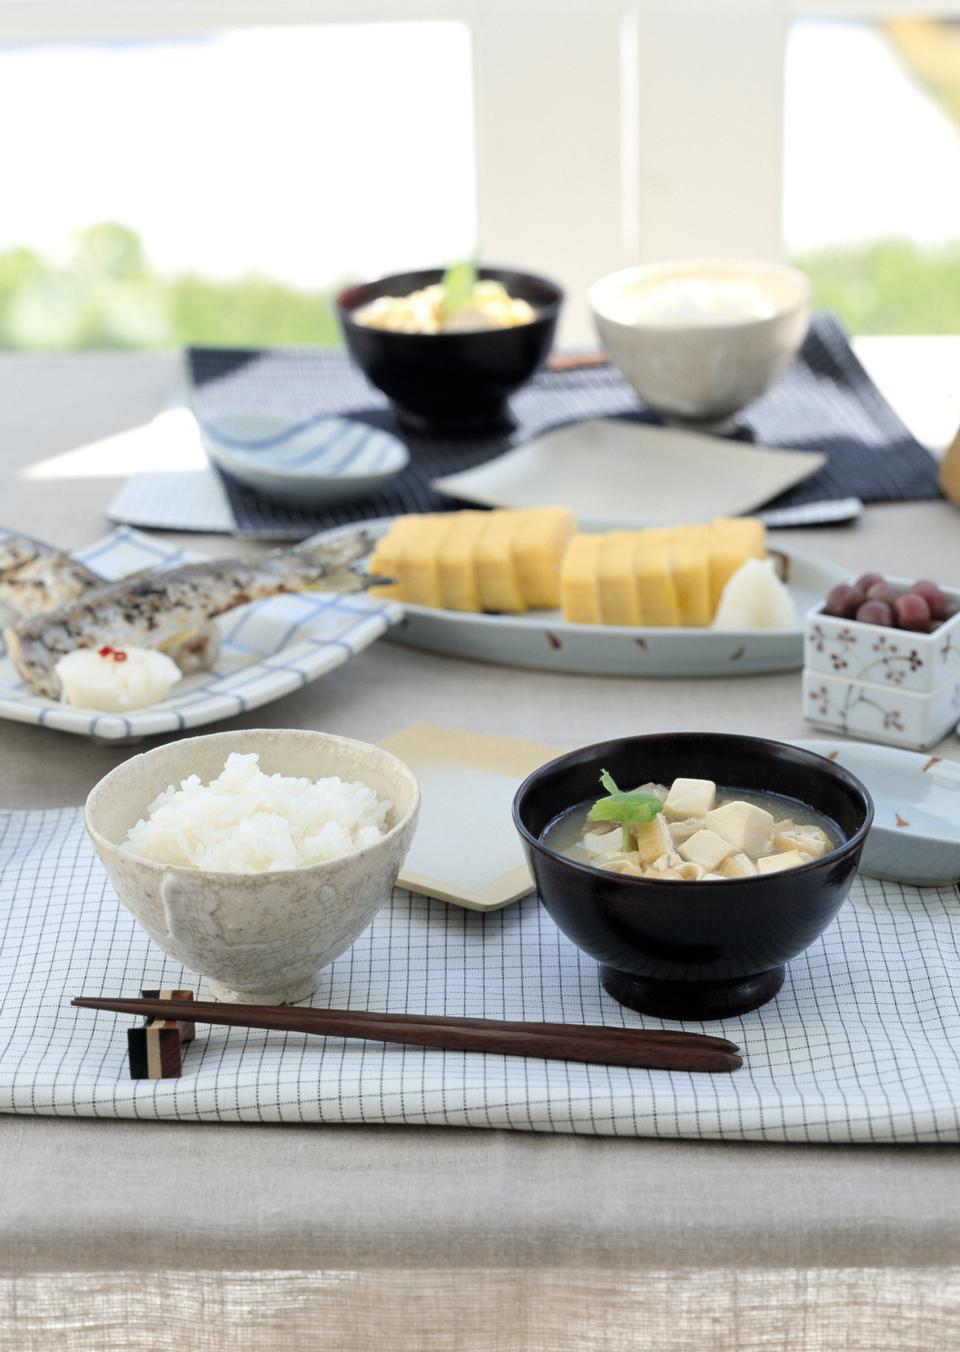 Soup and rice for traditional Japanese breakfast